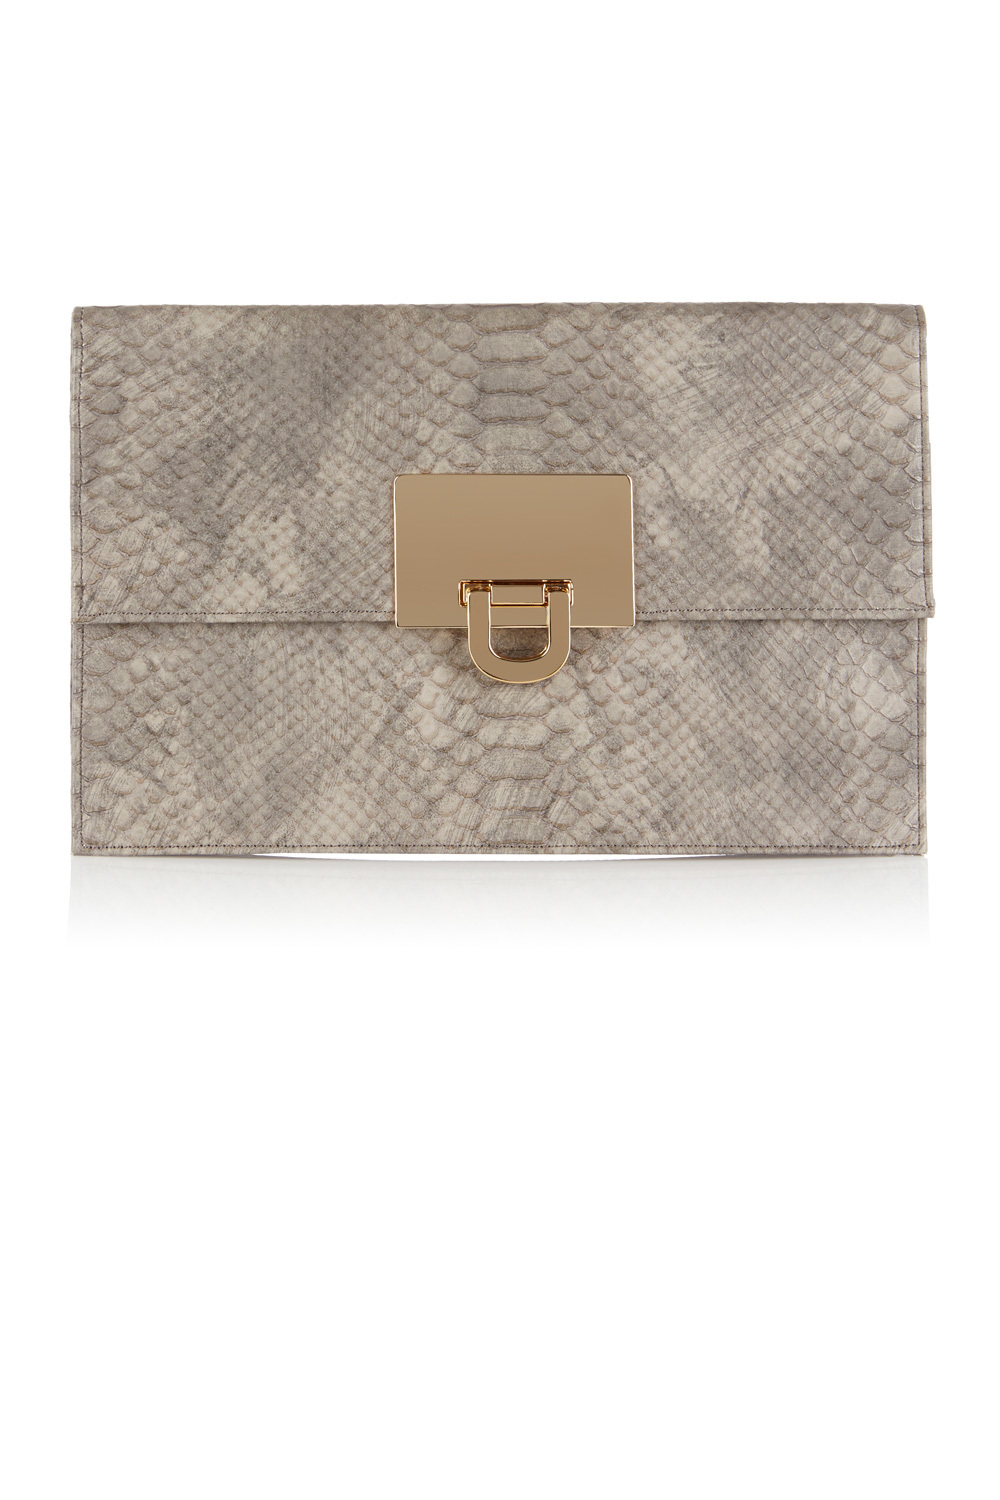 Filippa Snake Skin Clutch Bag - predominant colour: stone; secondary colour: gold; occasions: evening, occasion; type of pattern: standard; style: clutch; length: hand carry; size: standard; material: faux leather; pattern: animal print; finish: plain; season: a/w 2016; wardrobe: event